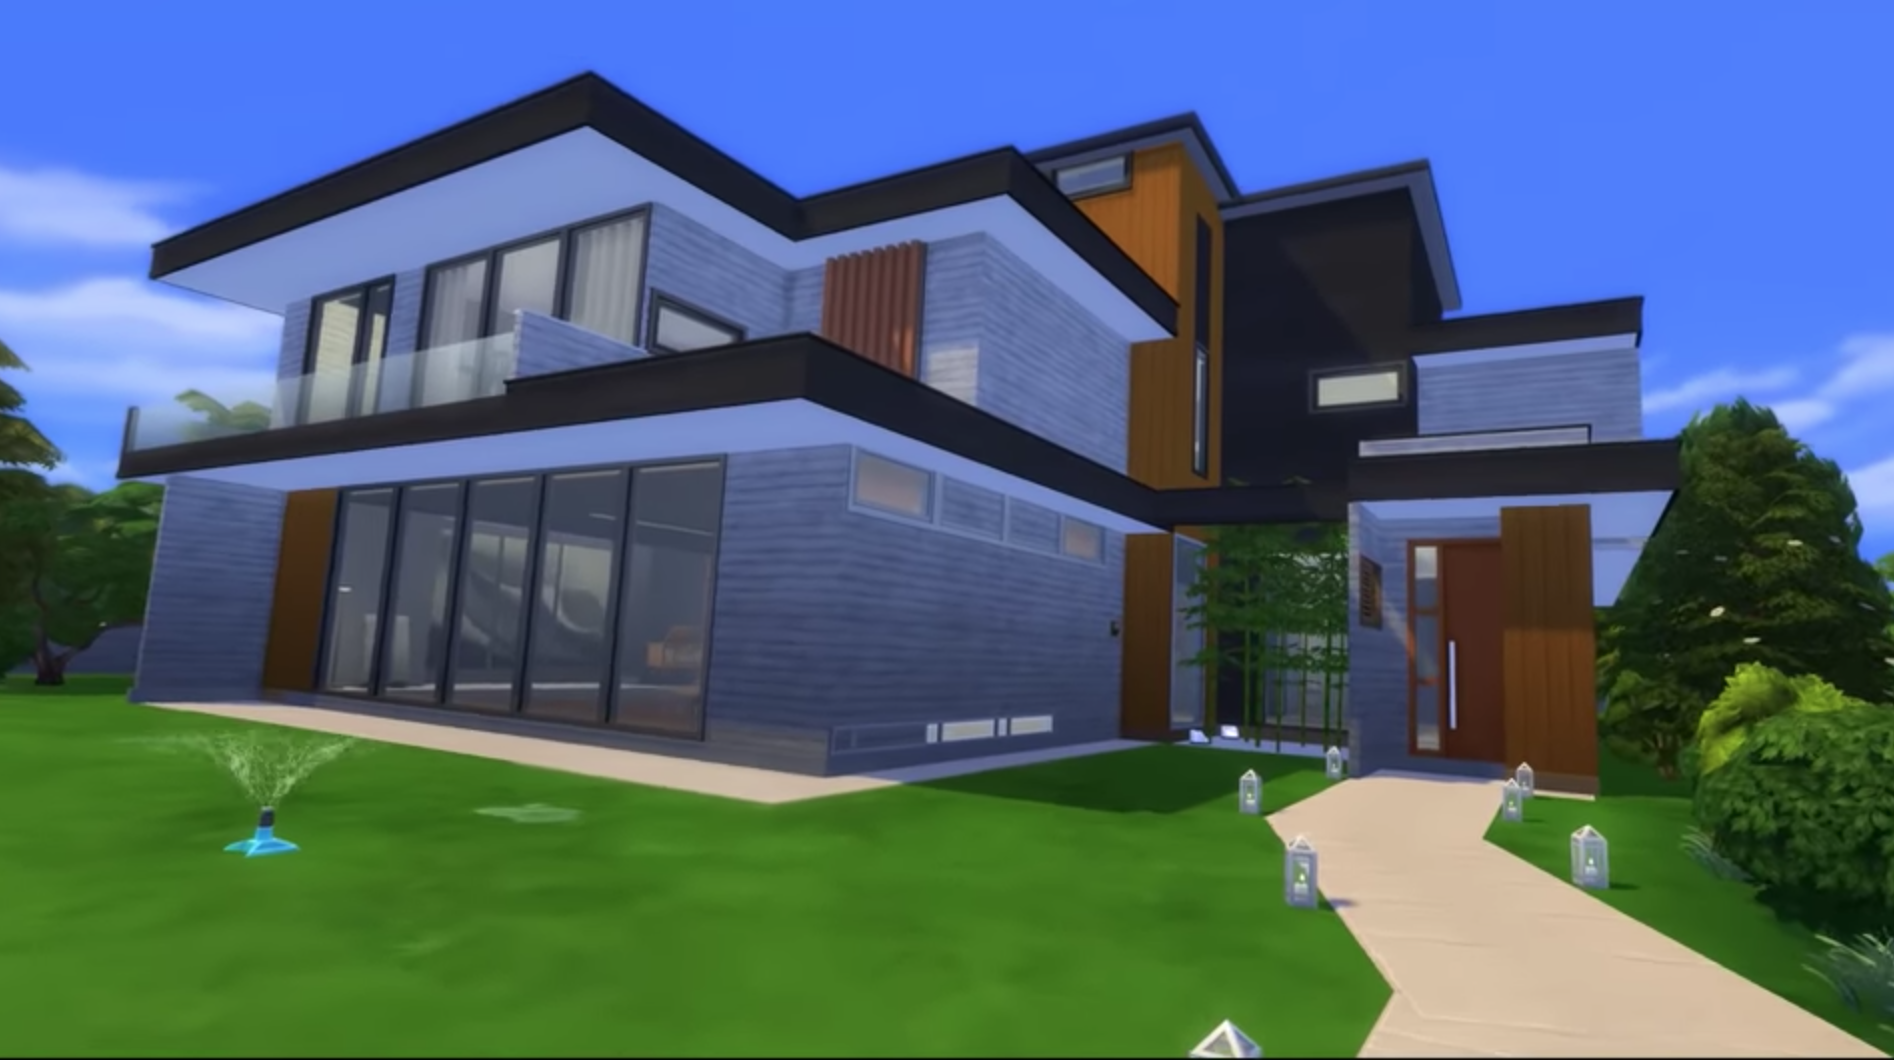 Digital rendering of a three story house with a front lawn and a walkway.